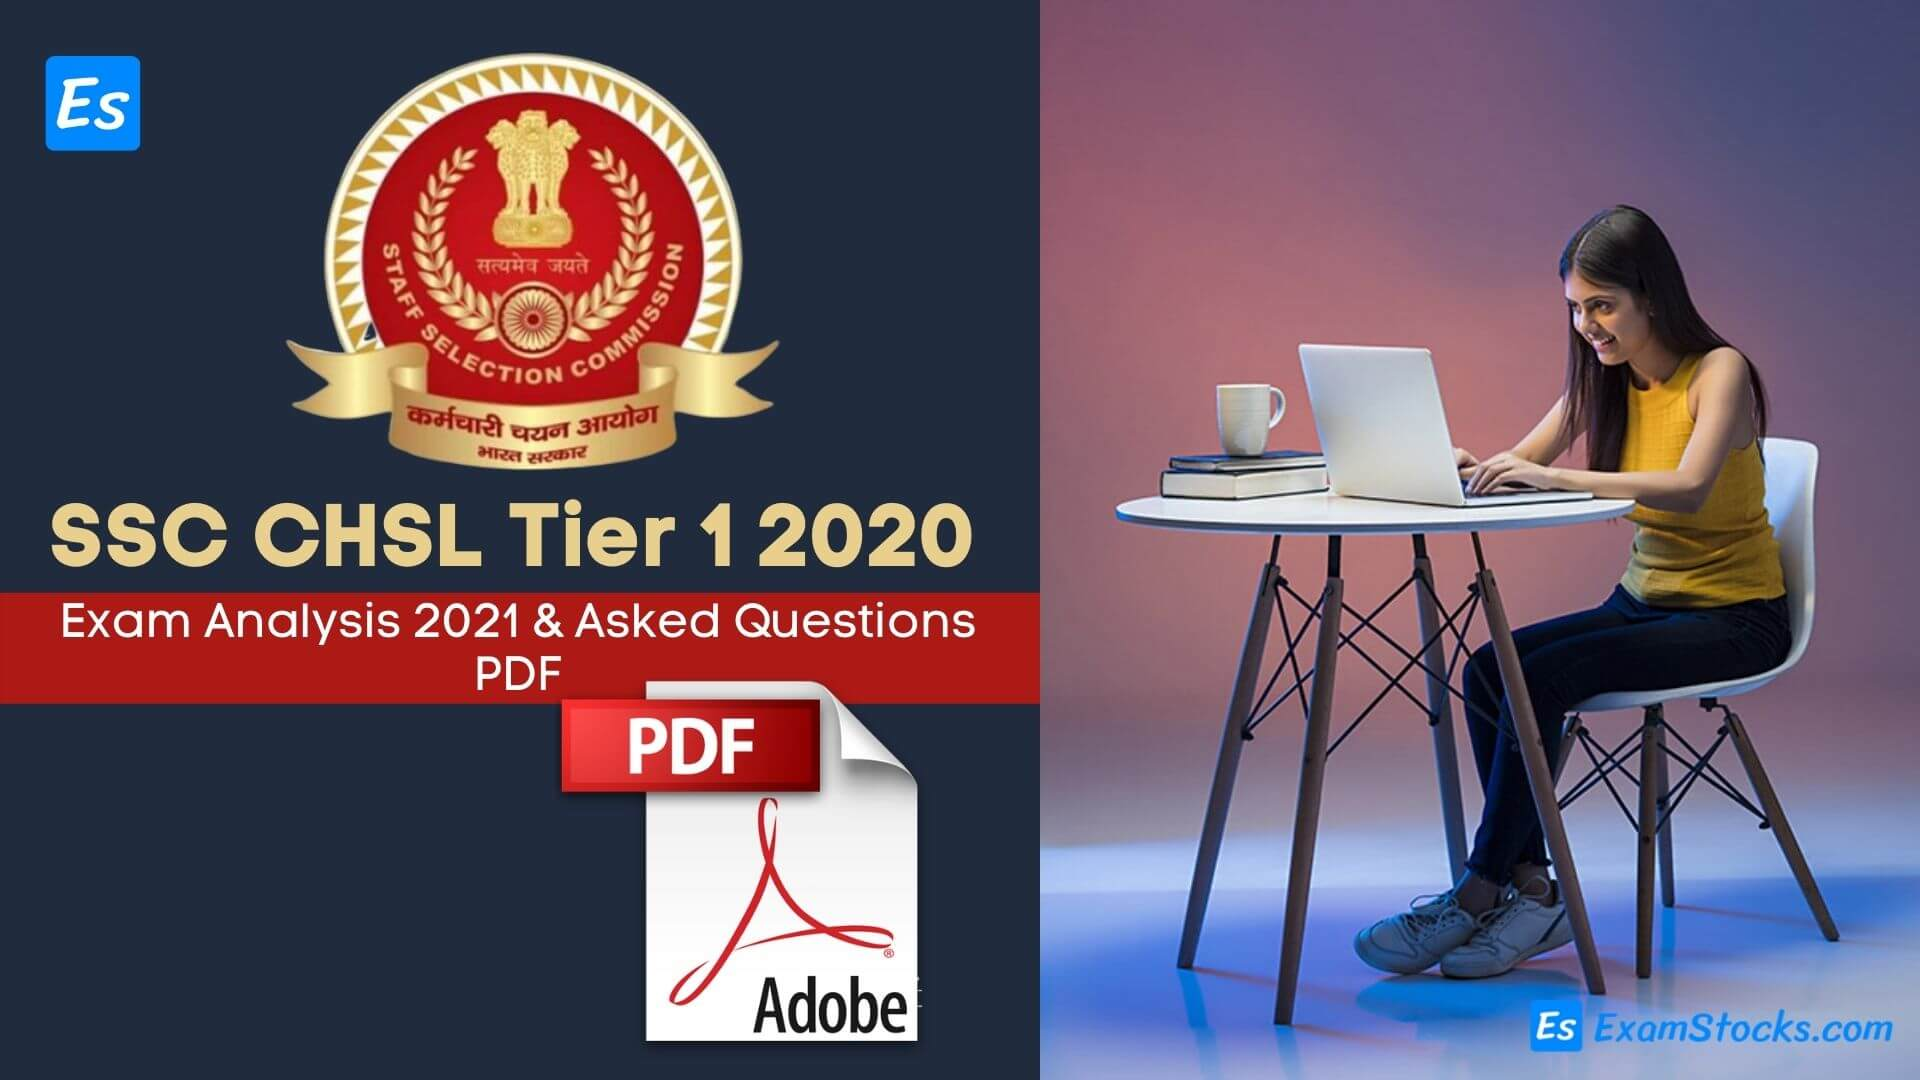 SSC CHSL Exam Analysis 2021 & Asked Questions PDF